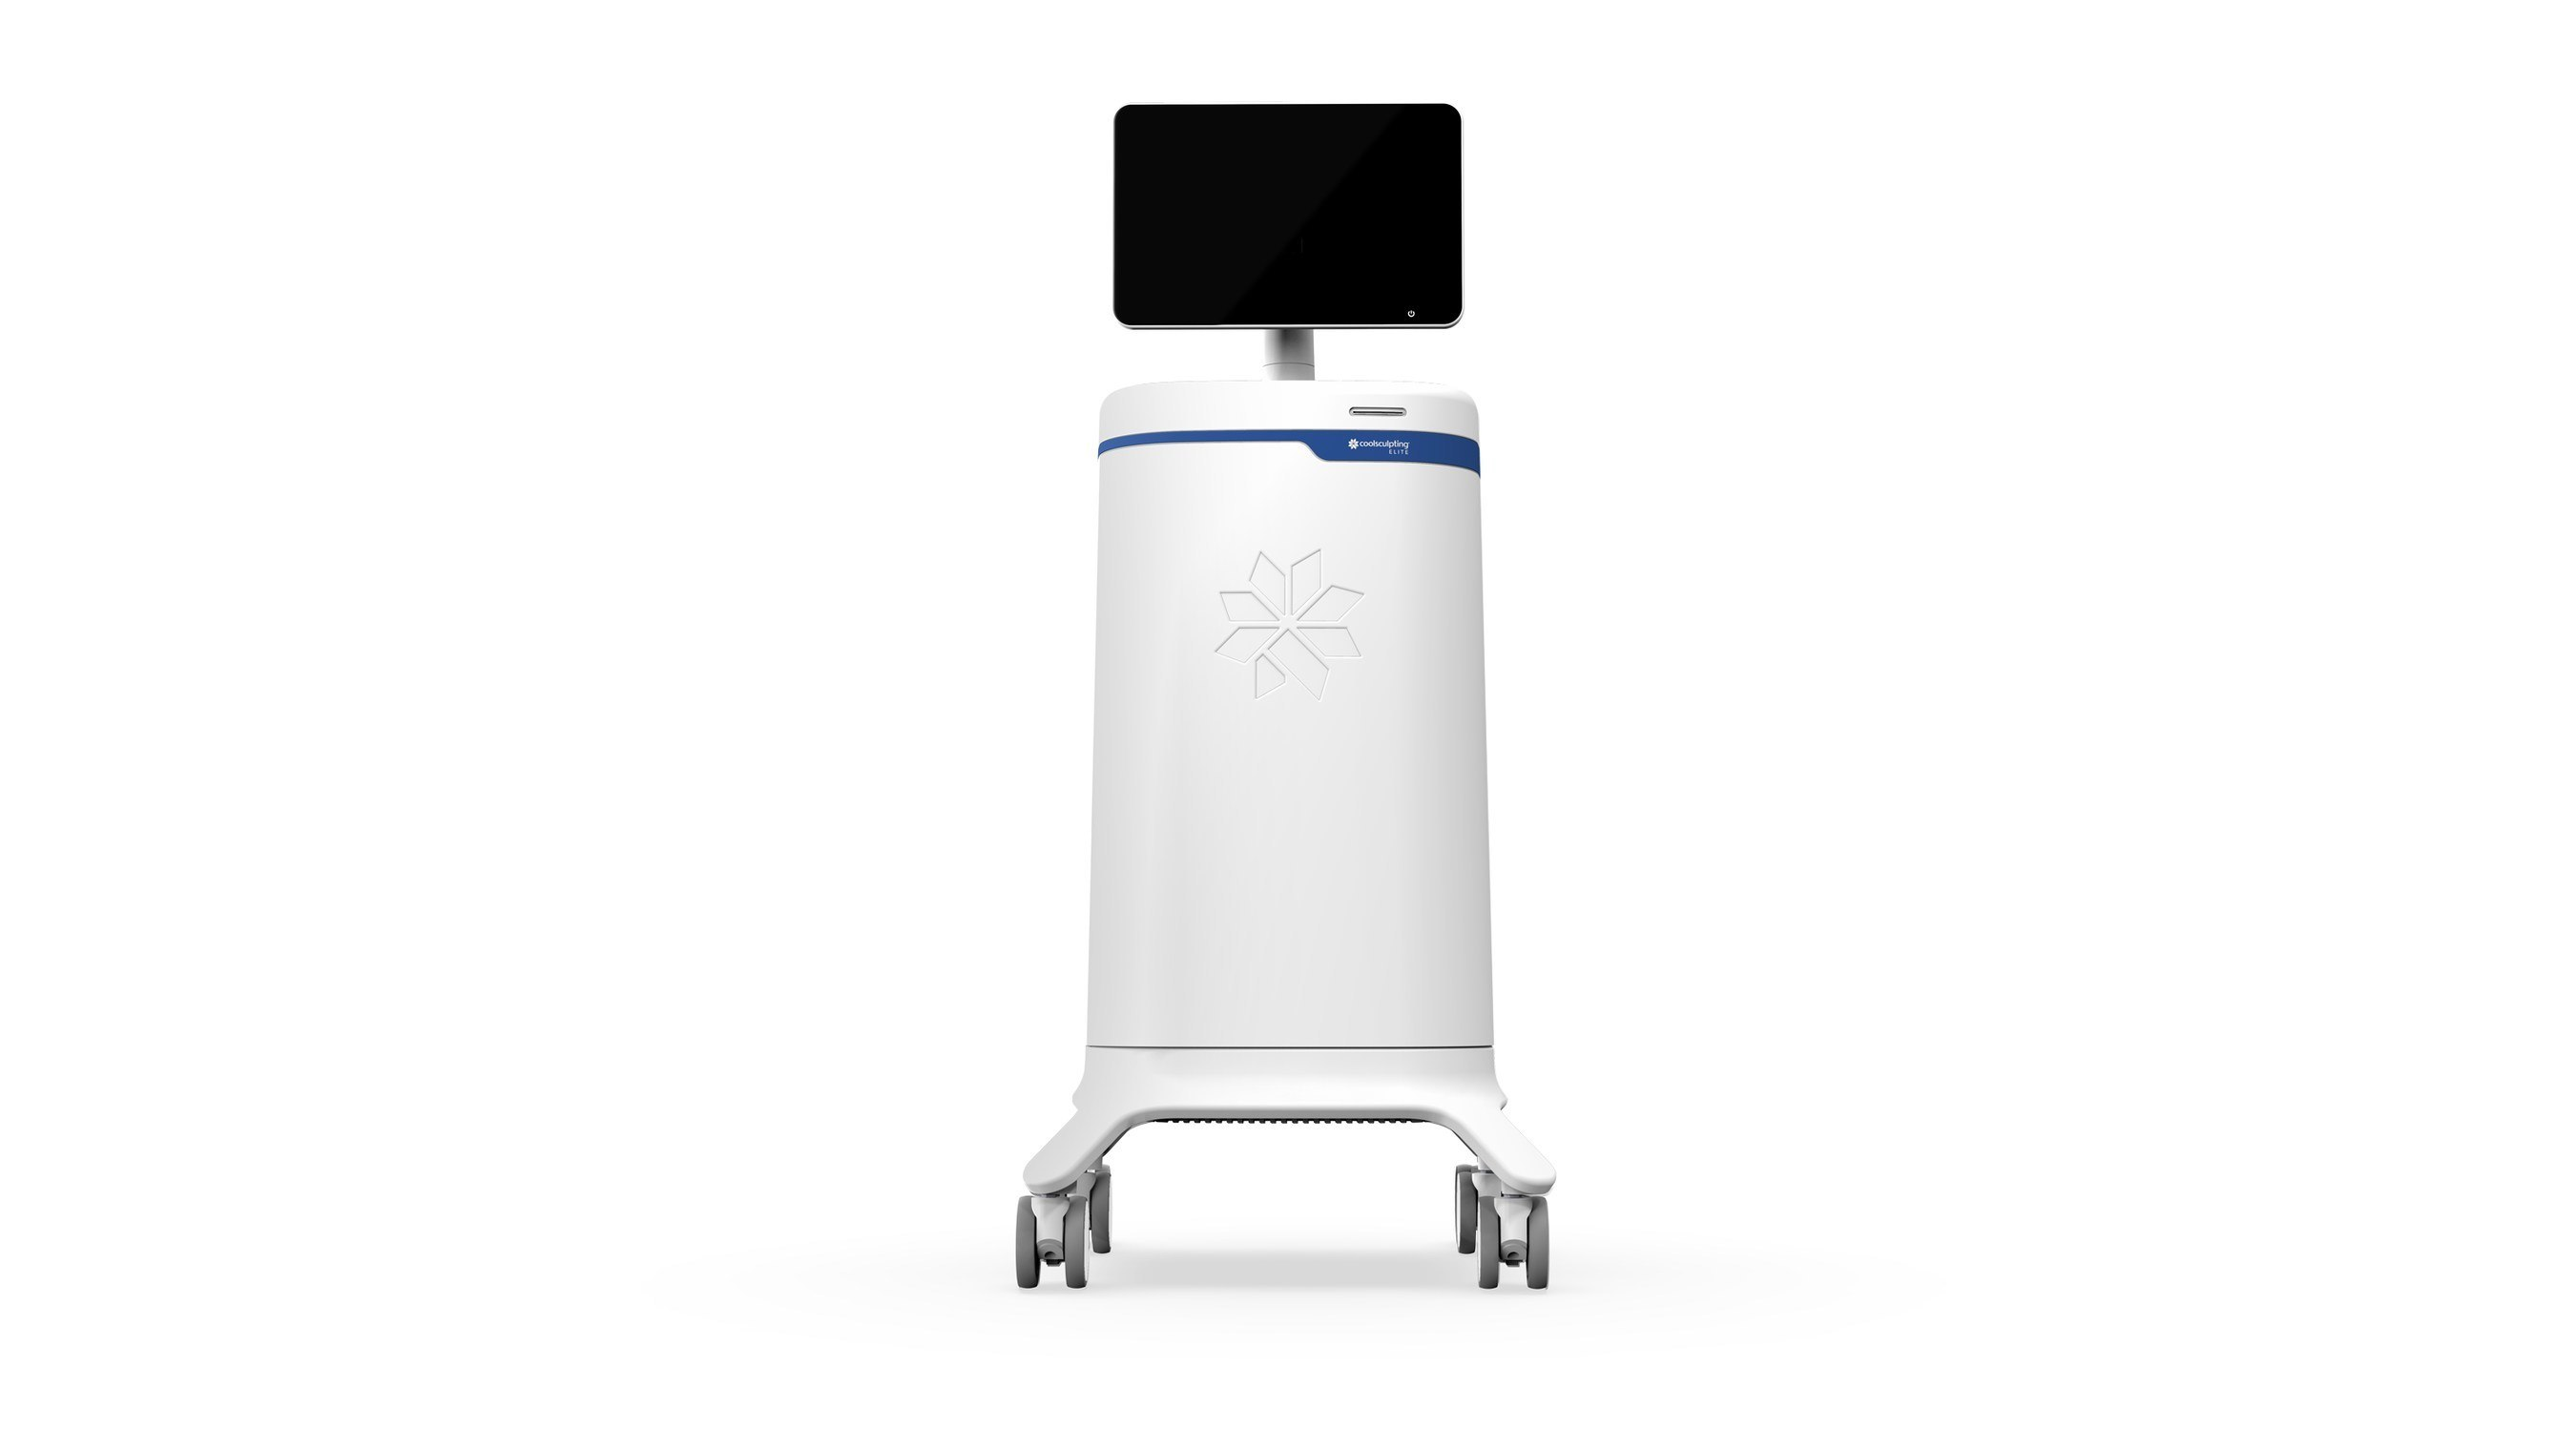 coolsculpting elite machine